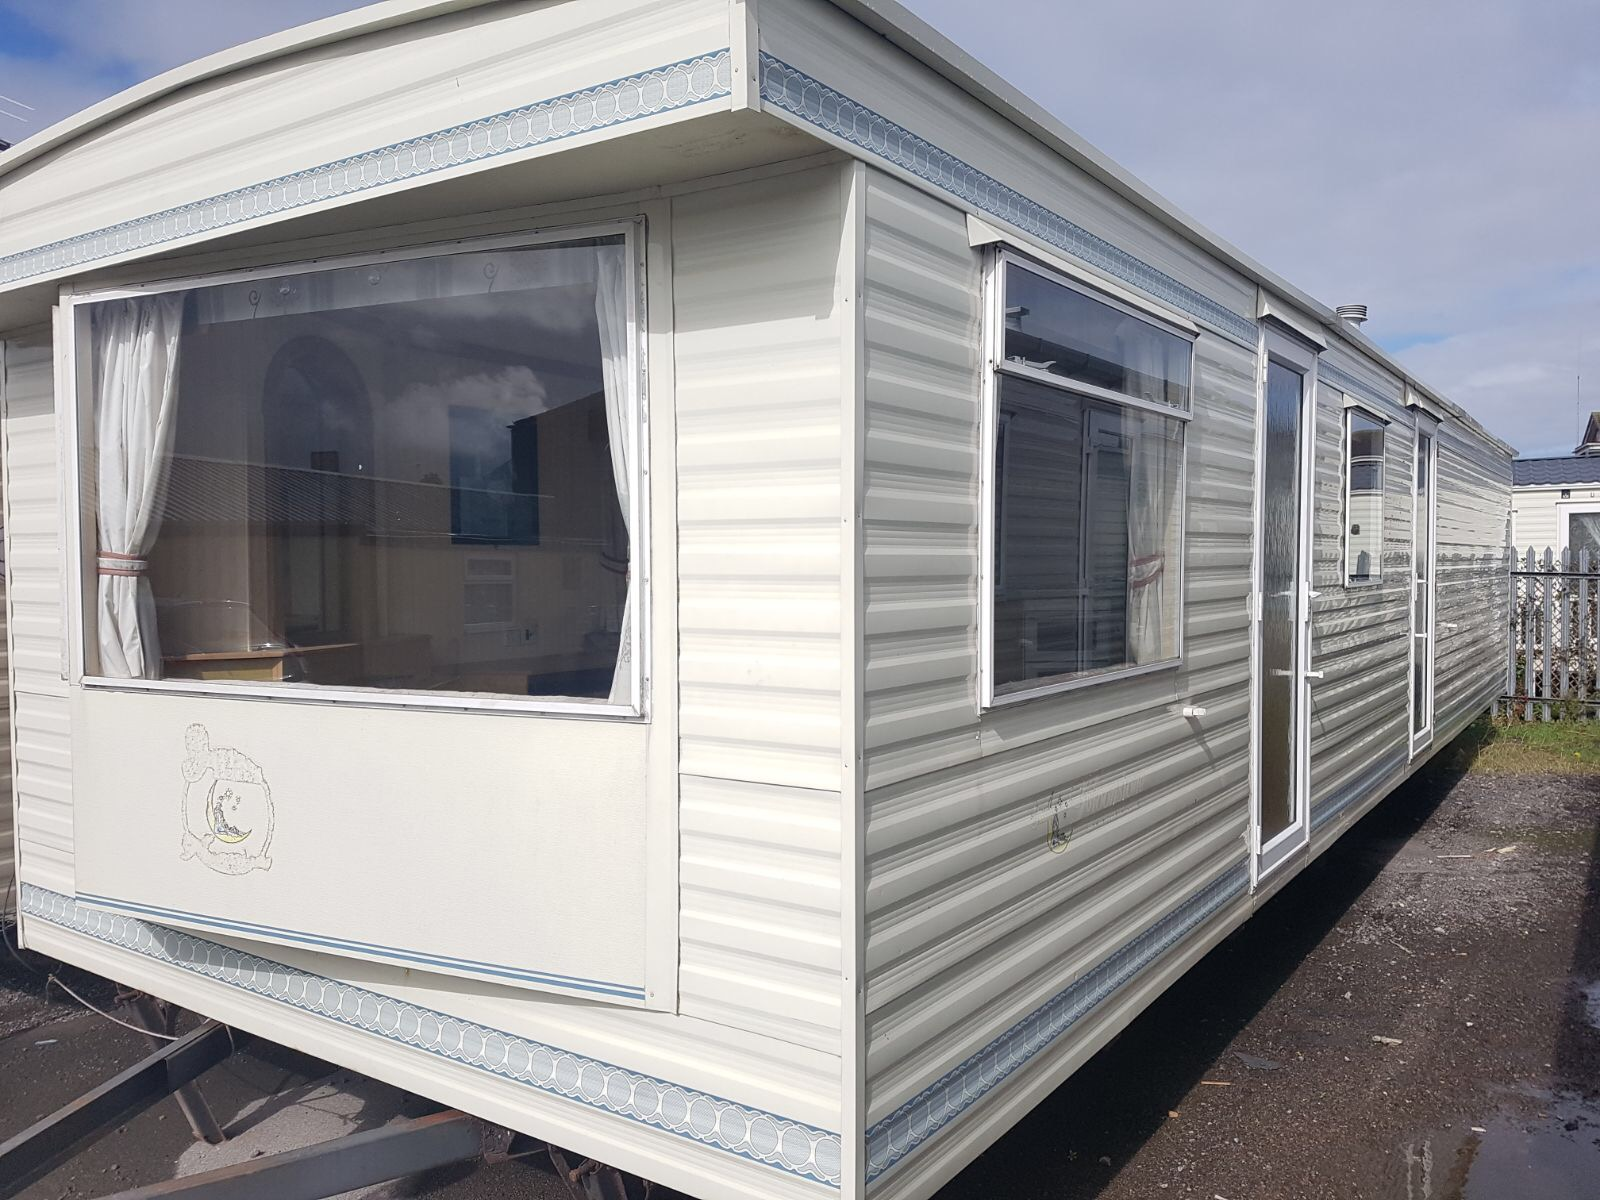 2000 Atlas Moonstone 35 x 10 x 3 Bedrooms with 50/50 Pitch Fees for 2018